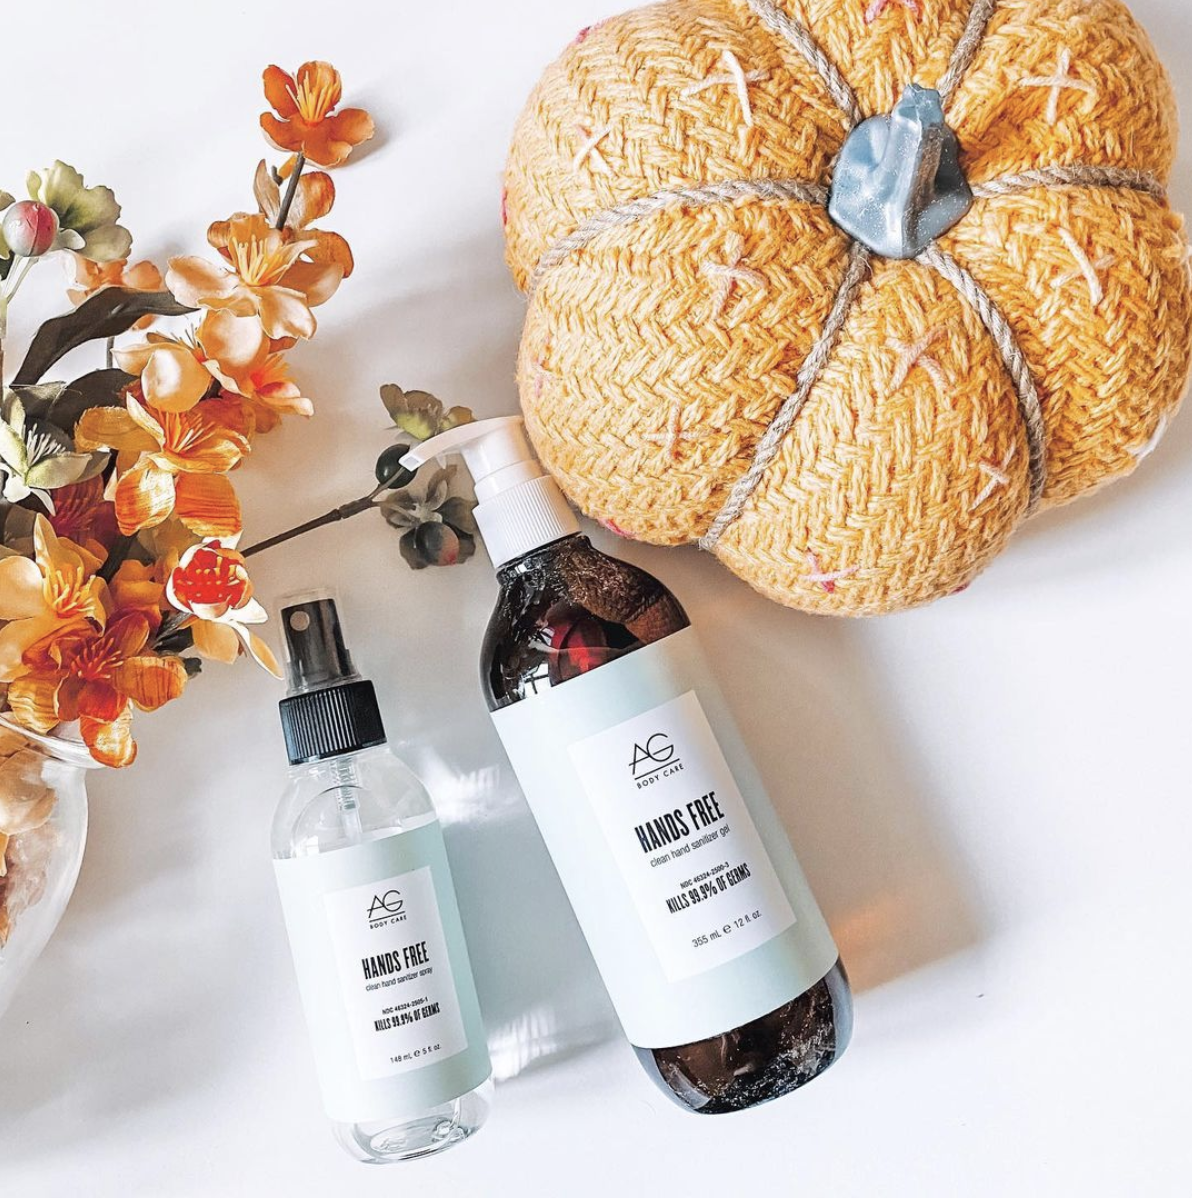 Two AG Hair products next to a knit pumpkin and flowers